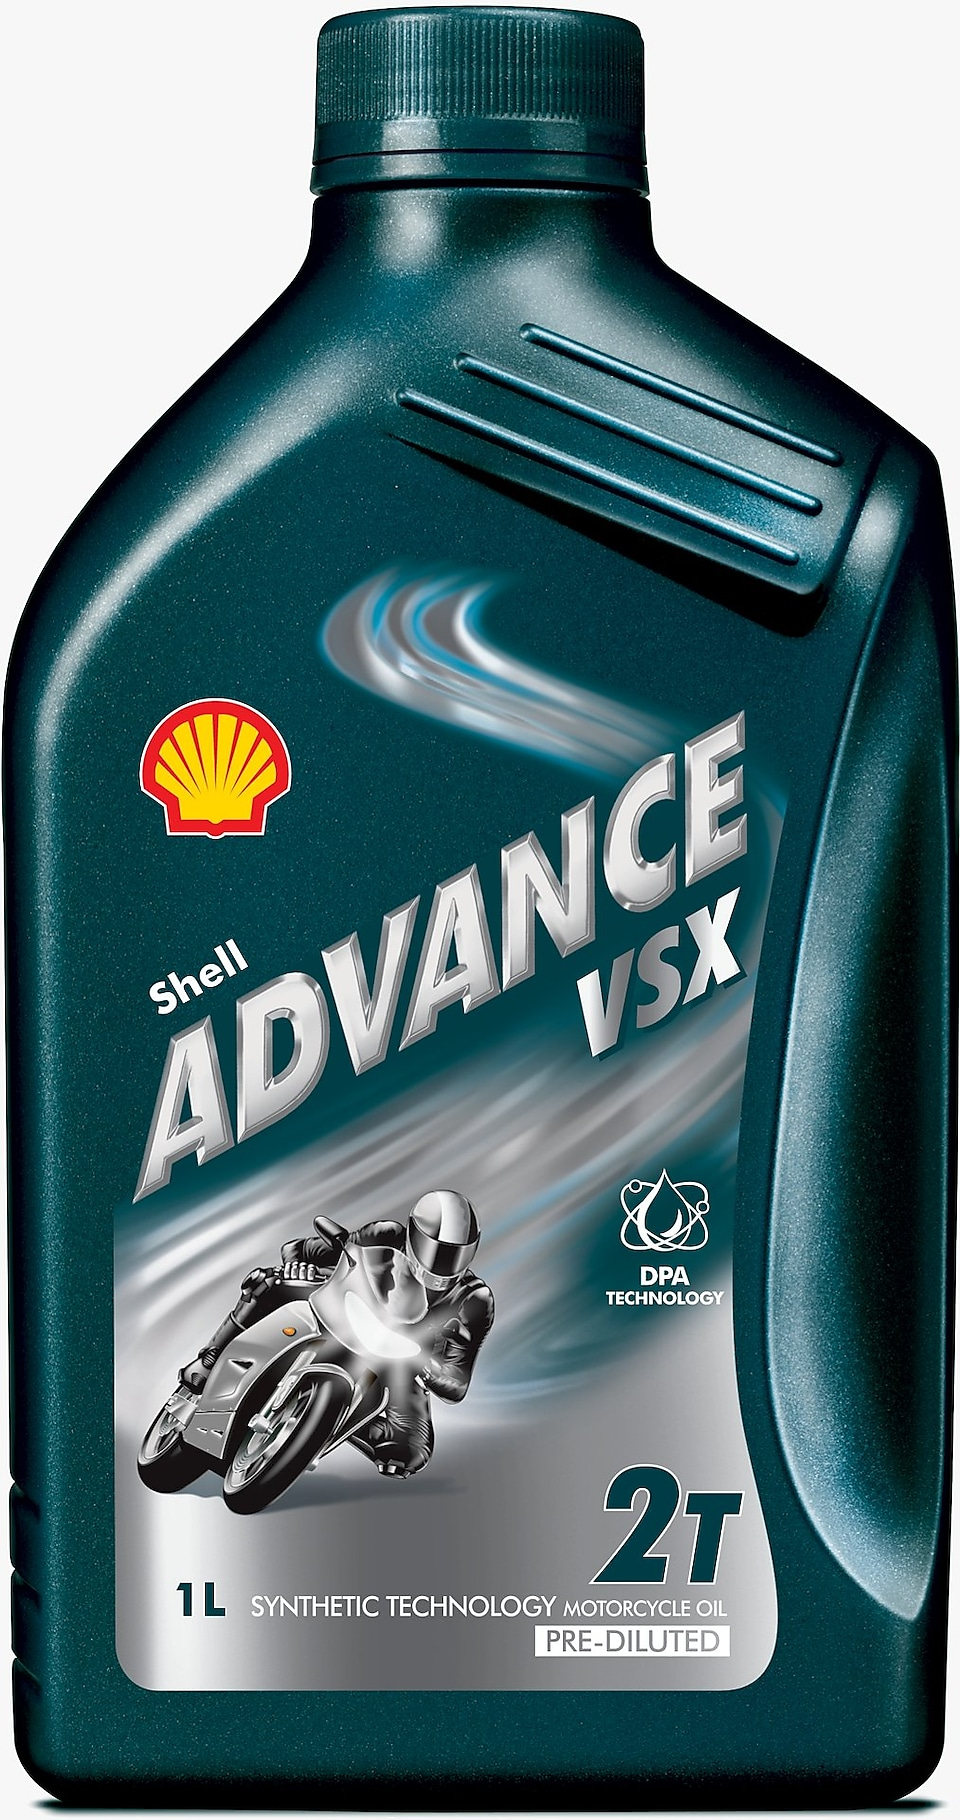 Packshot of Shell Advance VSX 2